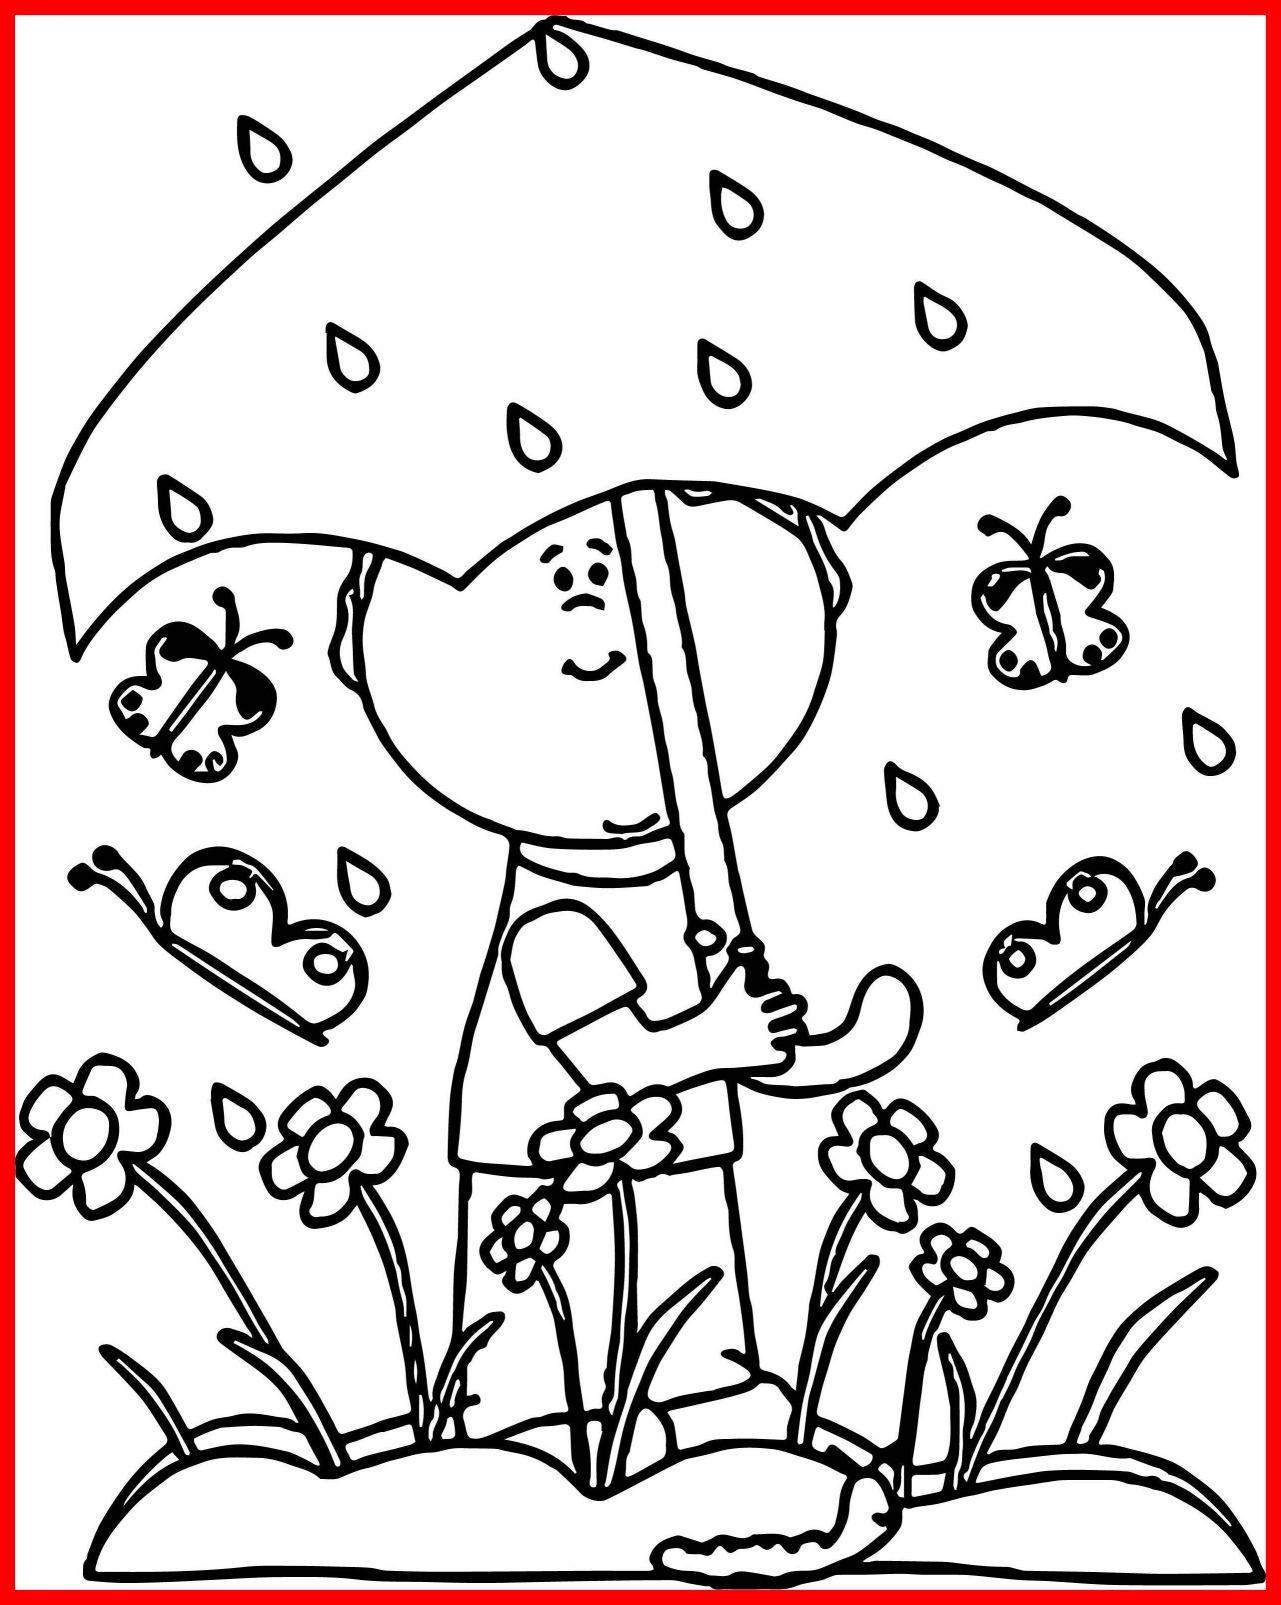 1281x1605 Stunning Spring Flowers Coloring Pages Designs Picture